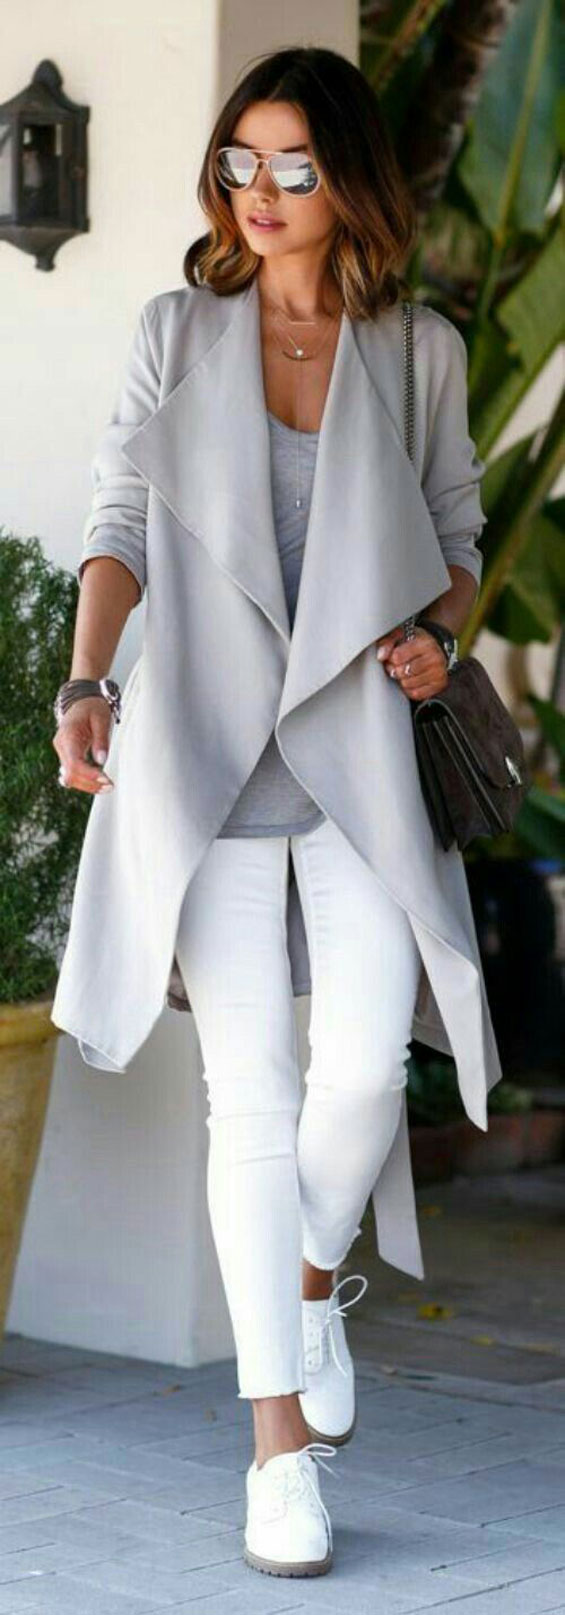 pair white jeans with cardigan